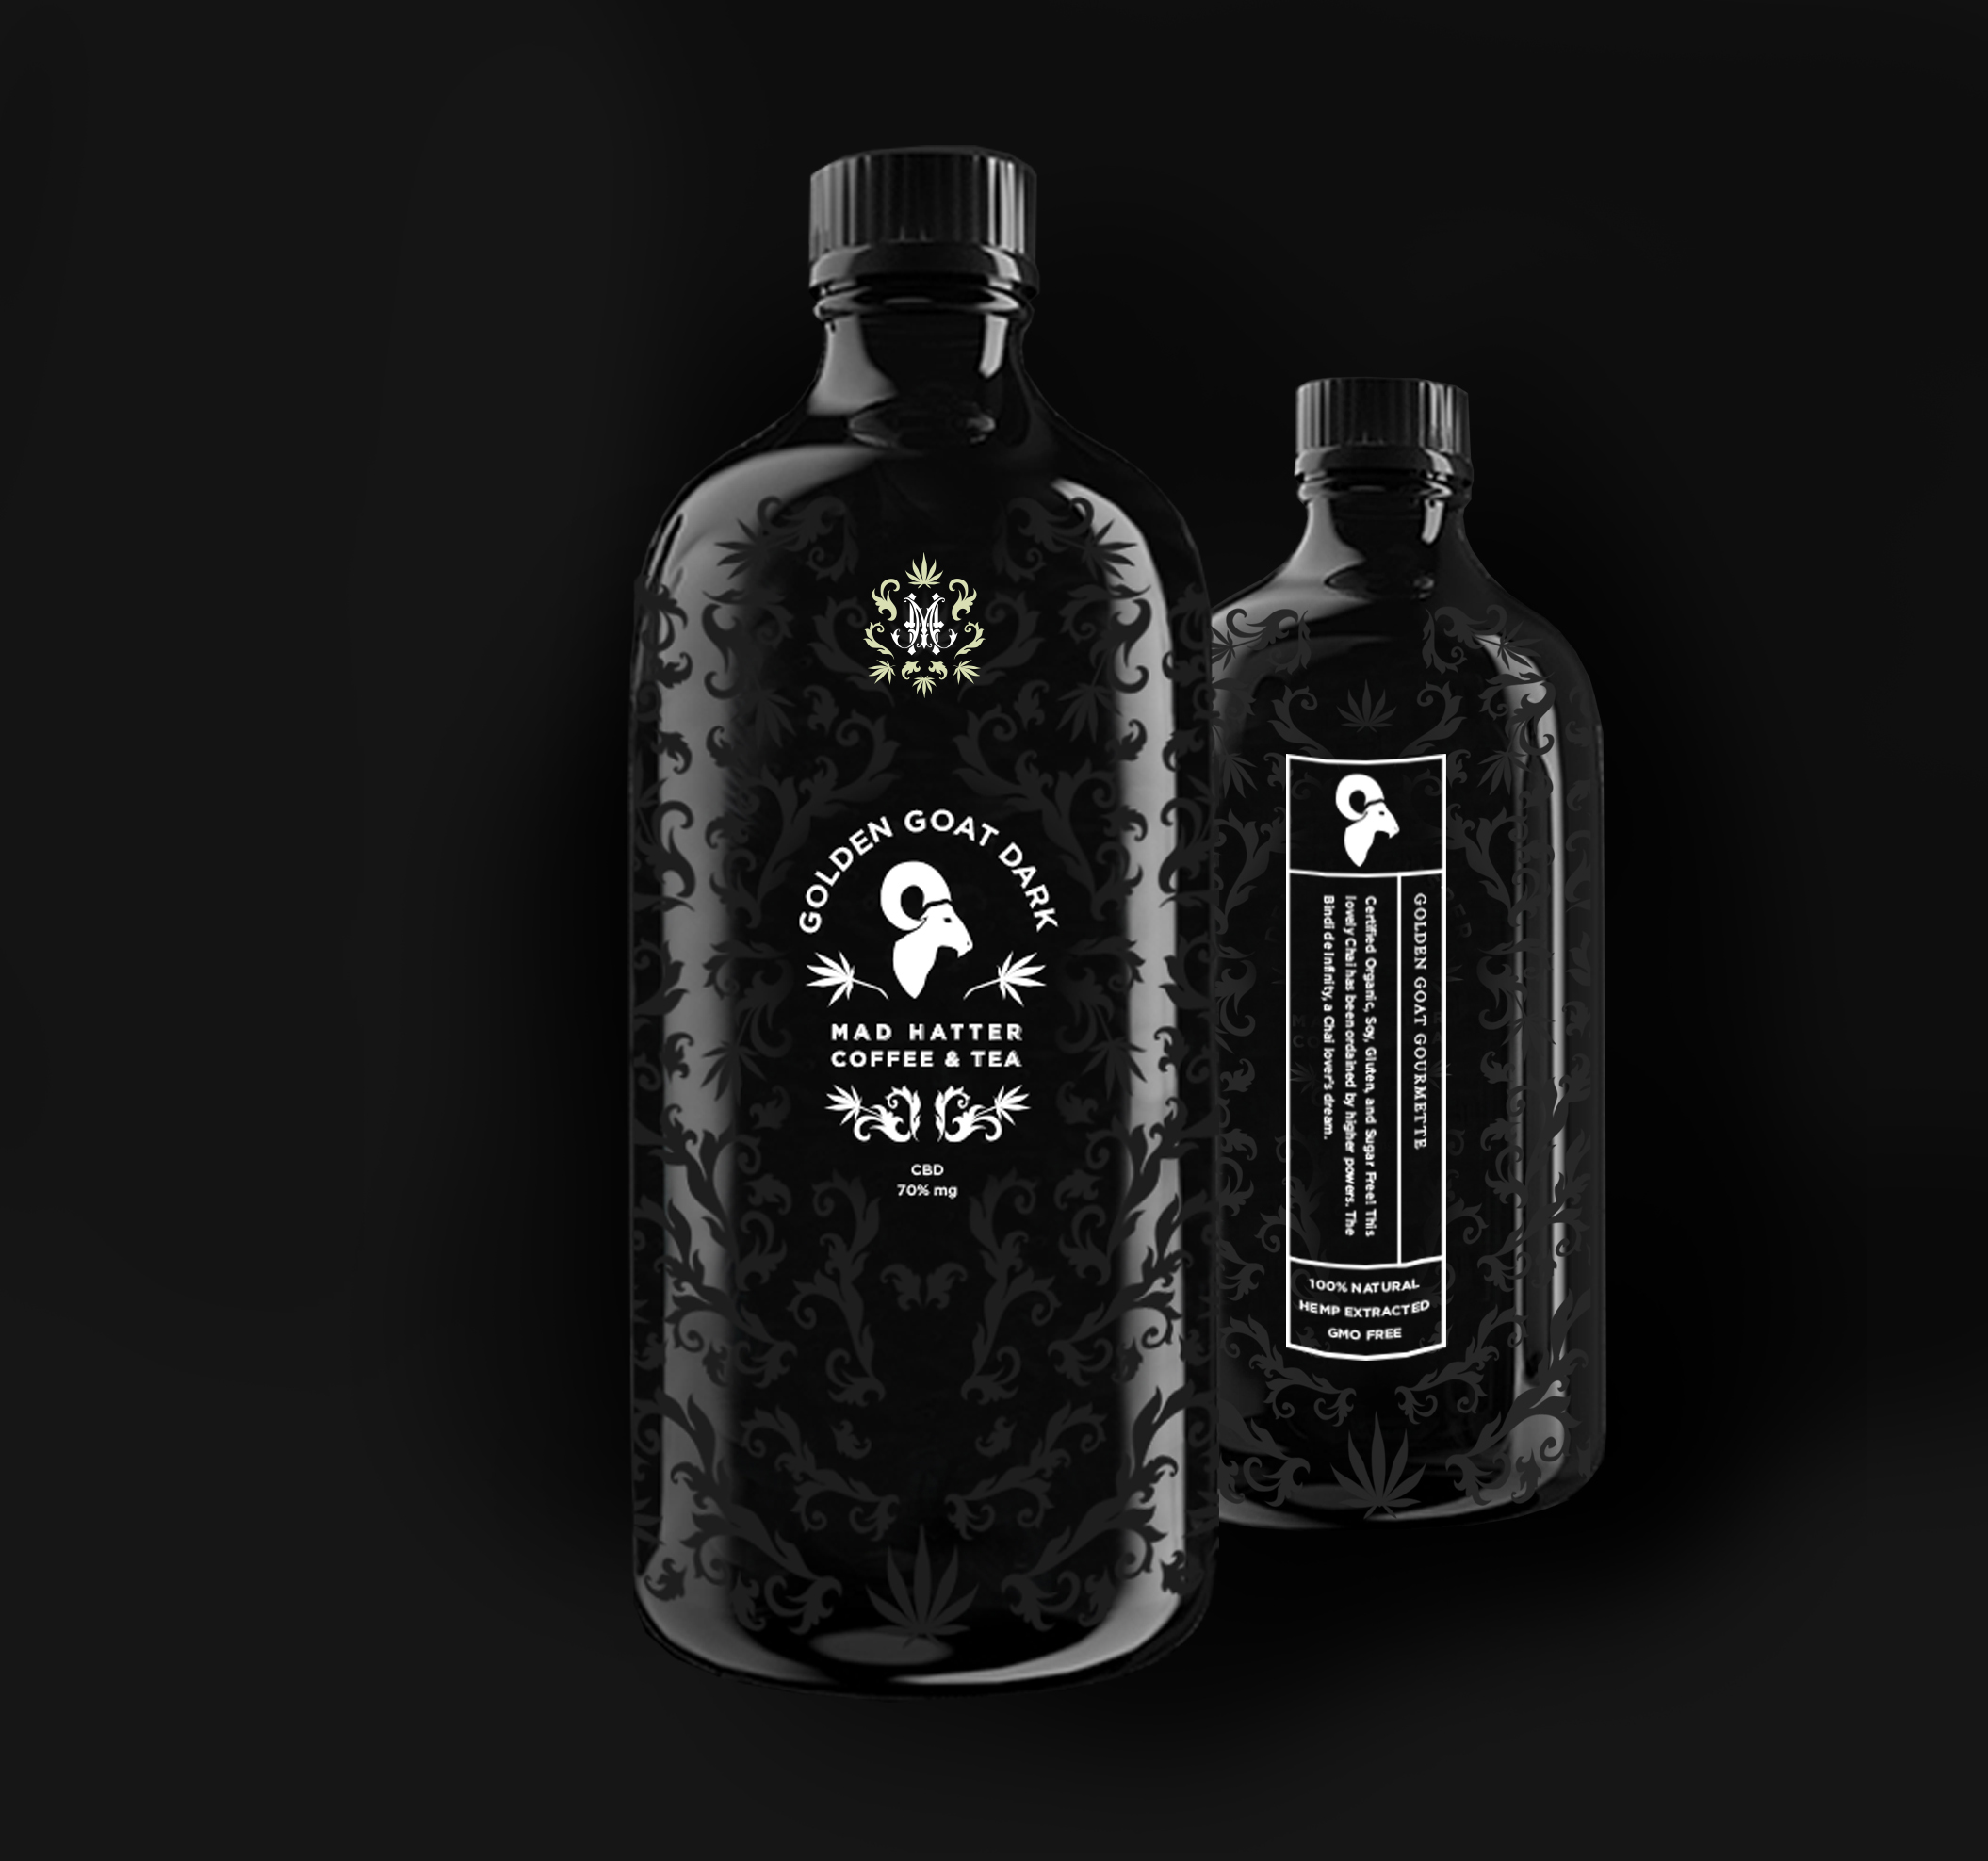 COLD BREW - The cold brew packaging gave me an opportunity to apply the Mad Hatter brand on a glass bottle. The pattern used throughout is easily applicable to various shapes and mediums. The information required on the packaging is applied vertically on the back using the length of the bottle. This method is carried over on all cylindrical forms.